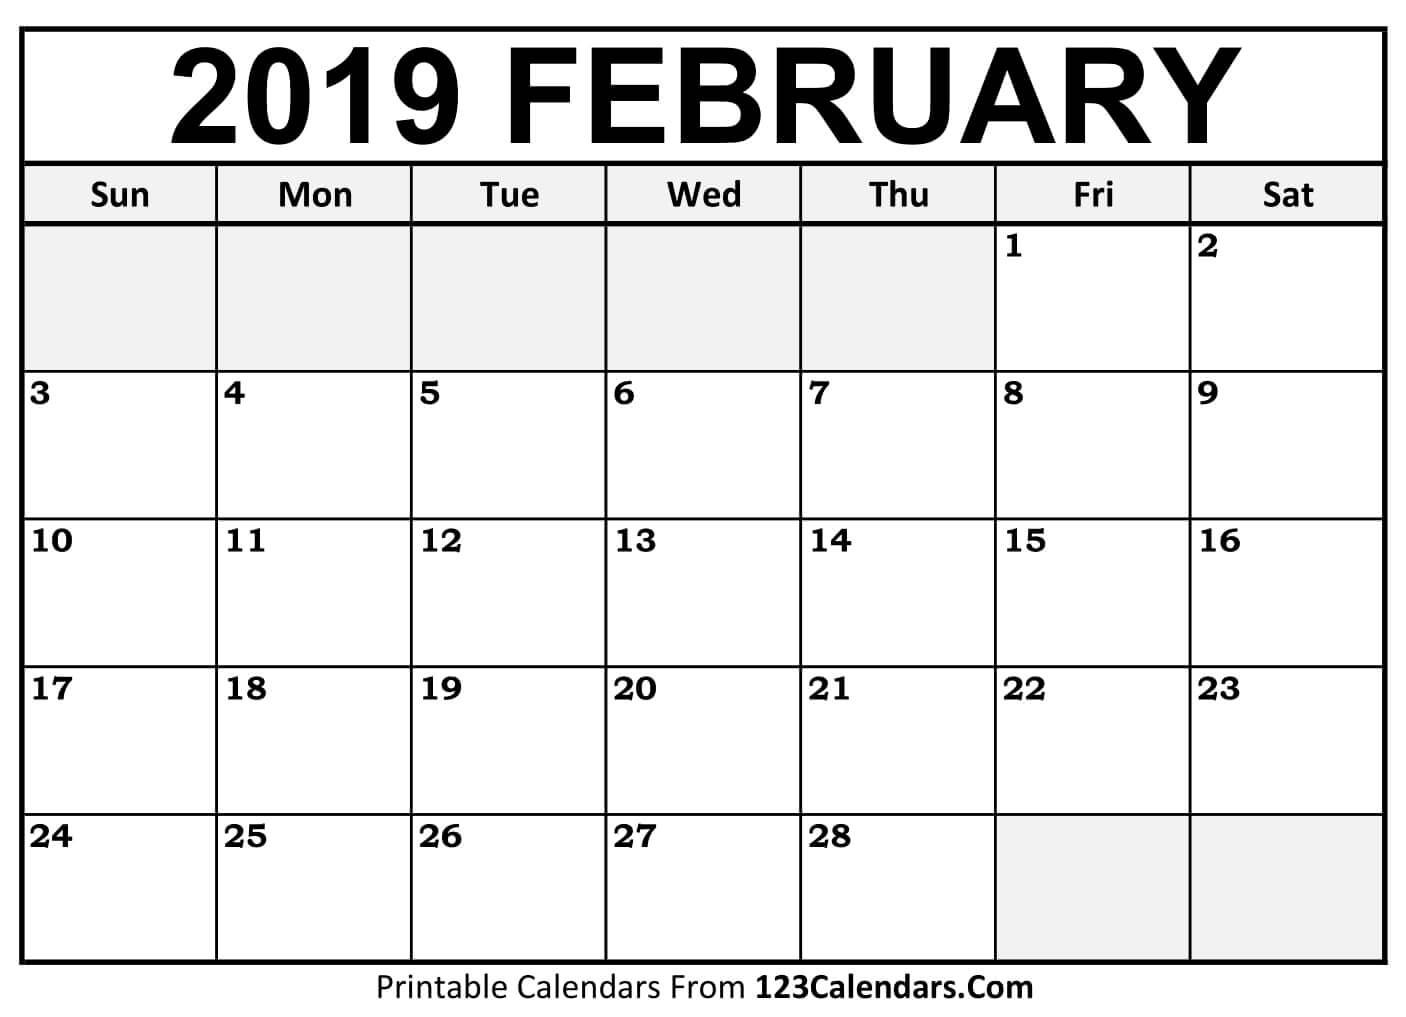 2019 February Calendar Holidays In Word – Printable Calendar 2019 Calendar 2019 February Printable